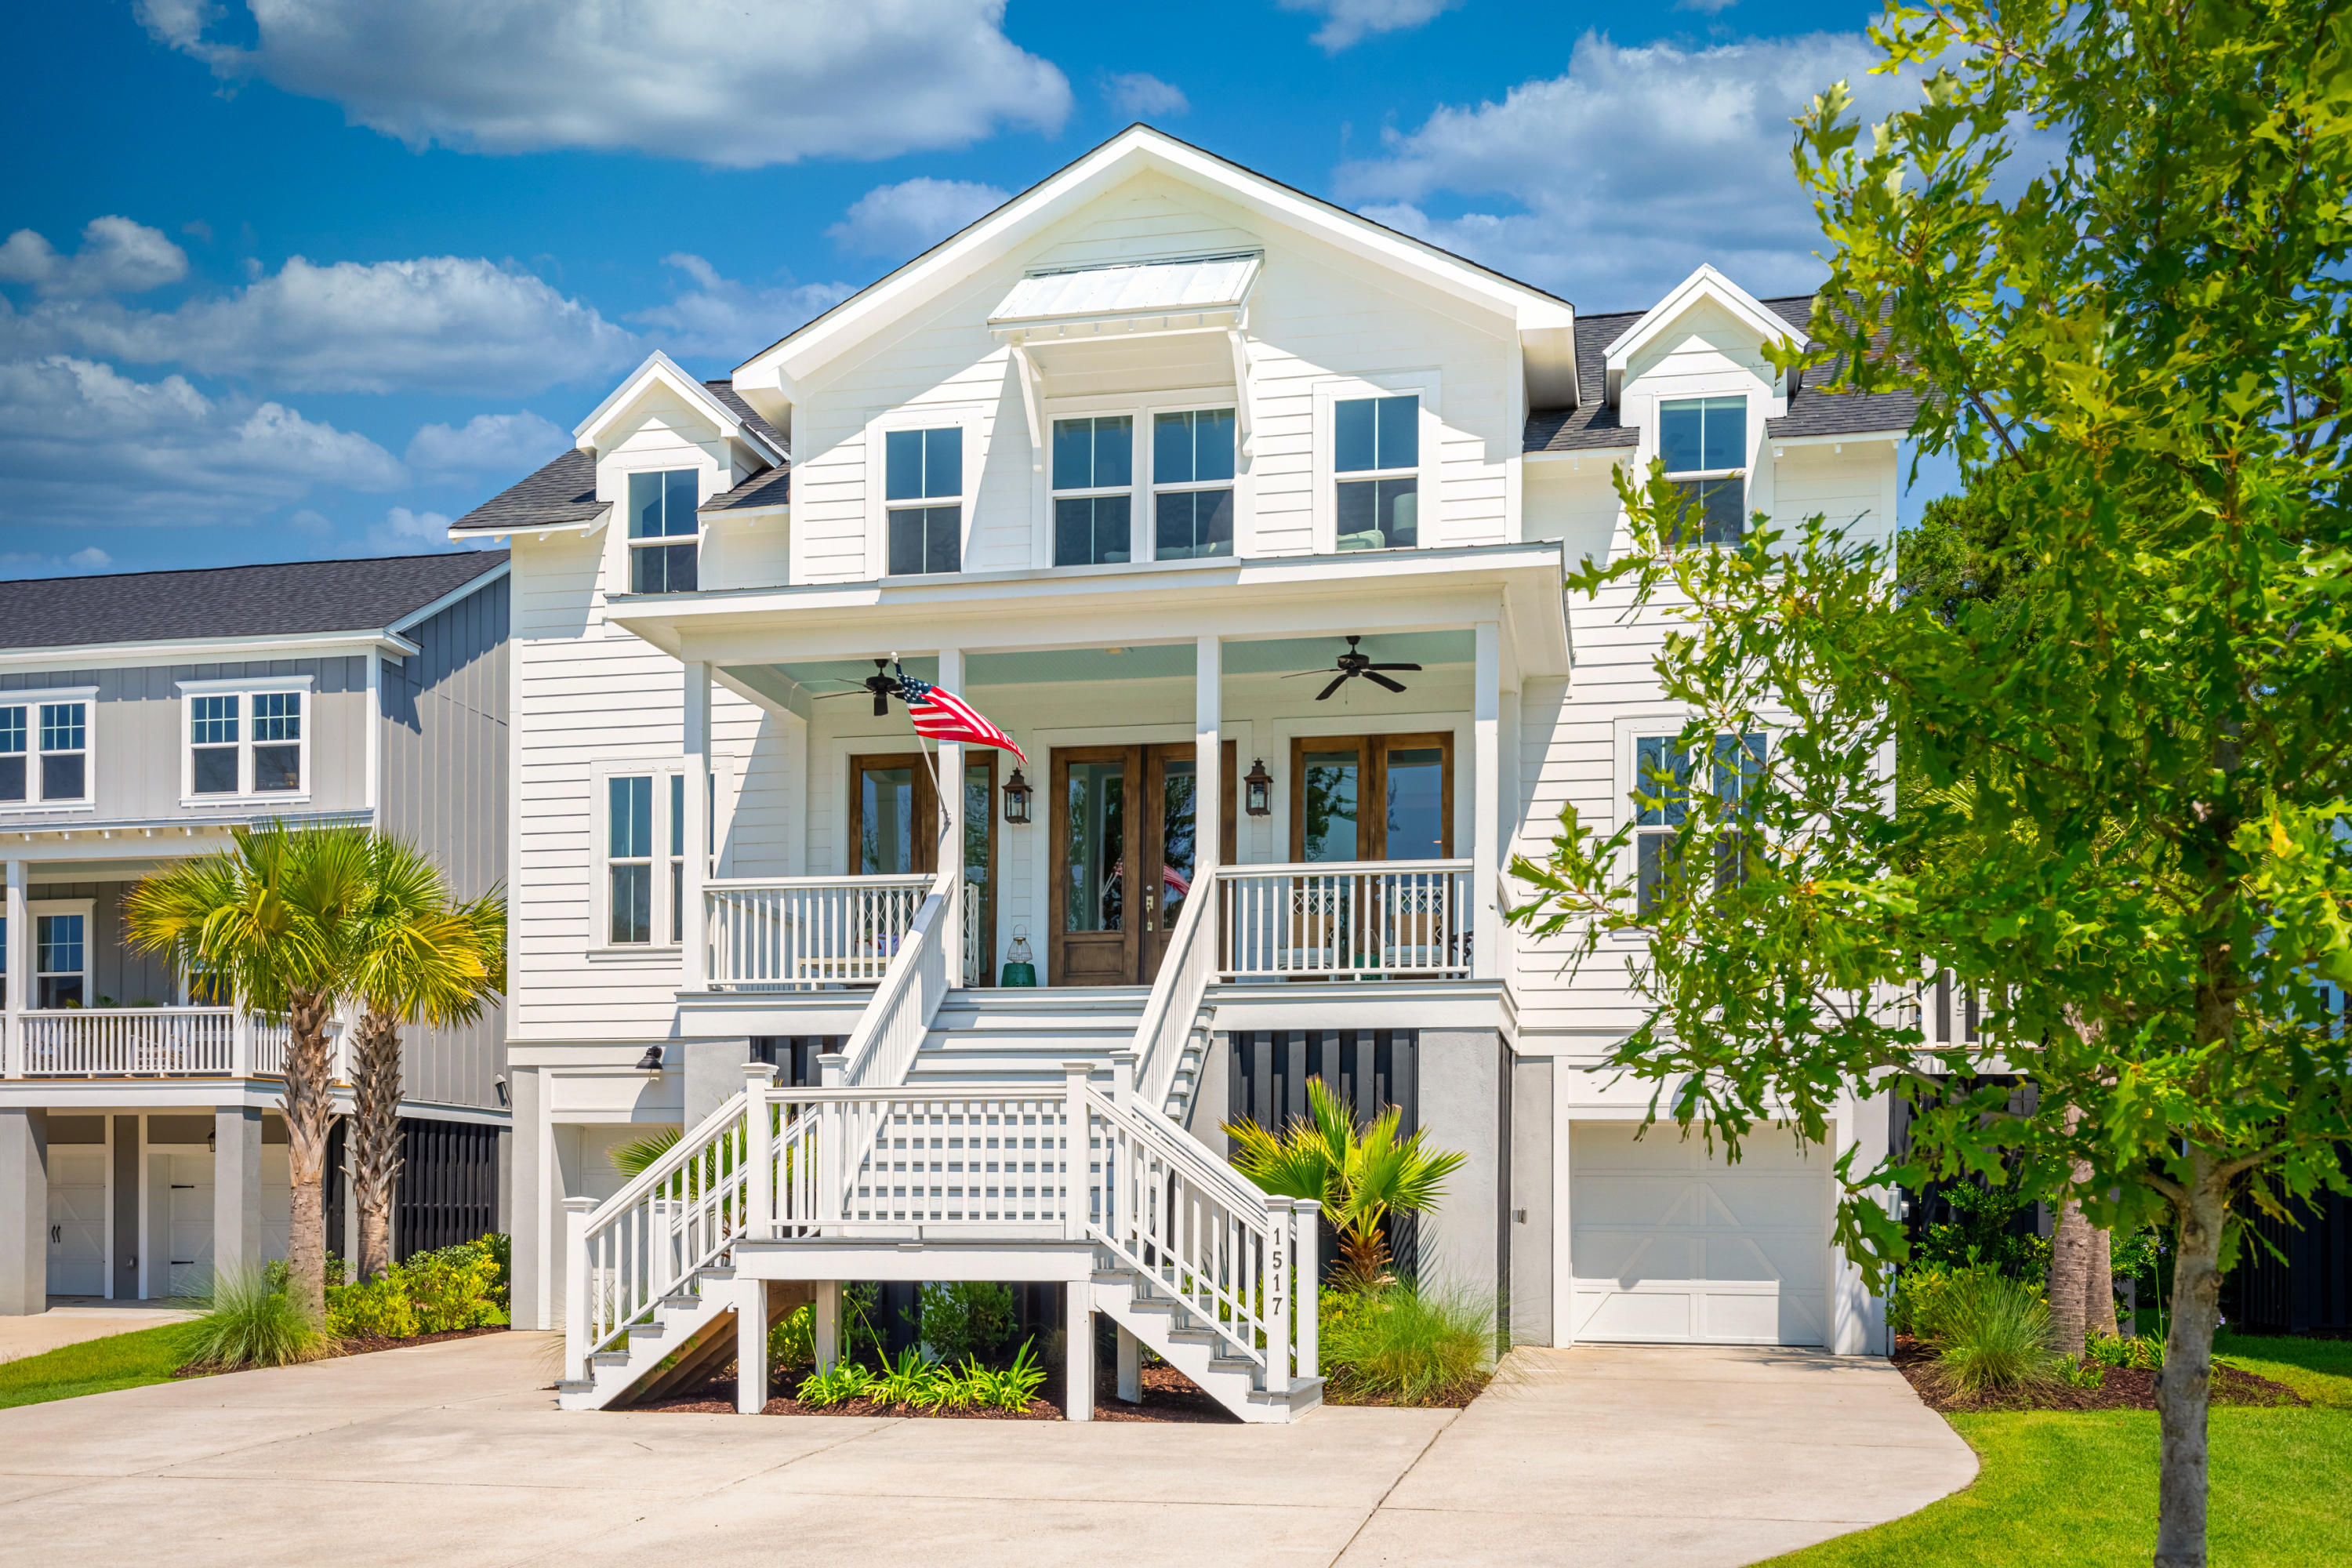 Stratton by the Sound Homes For Sale - 1517 Menhaden, Mount Pleasant, SC - 1